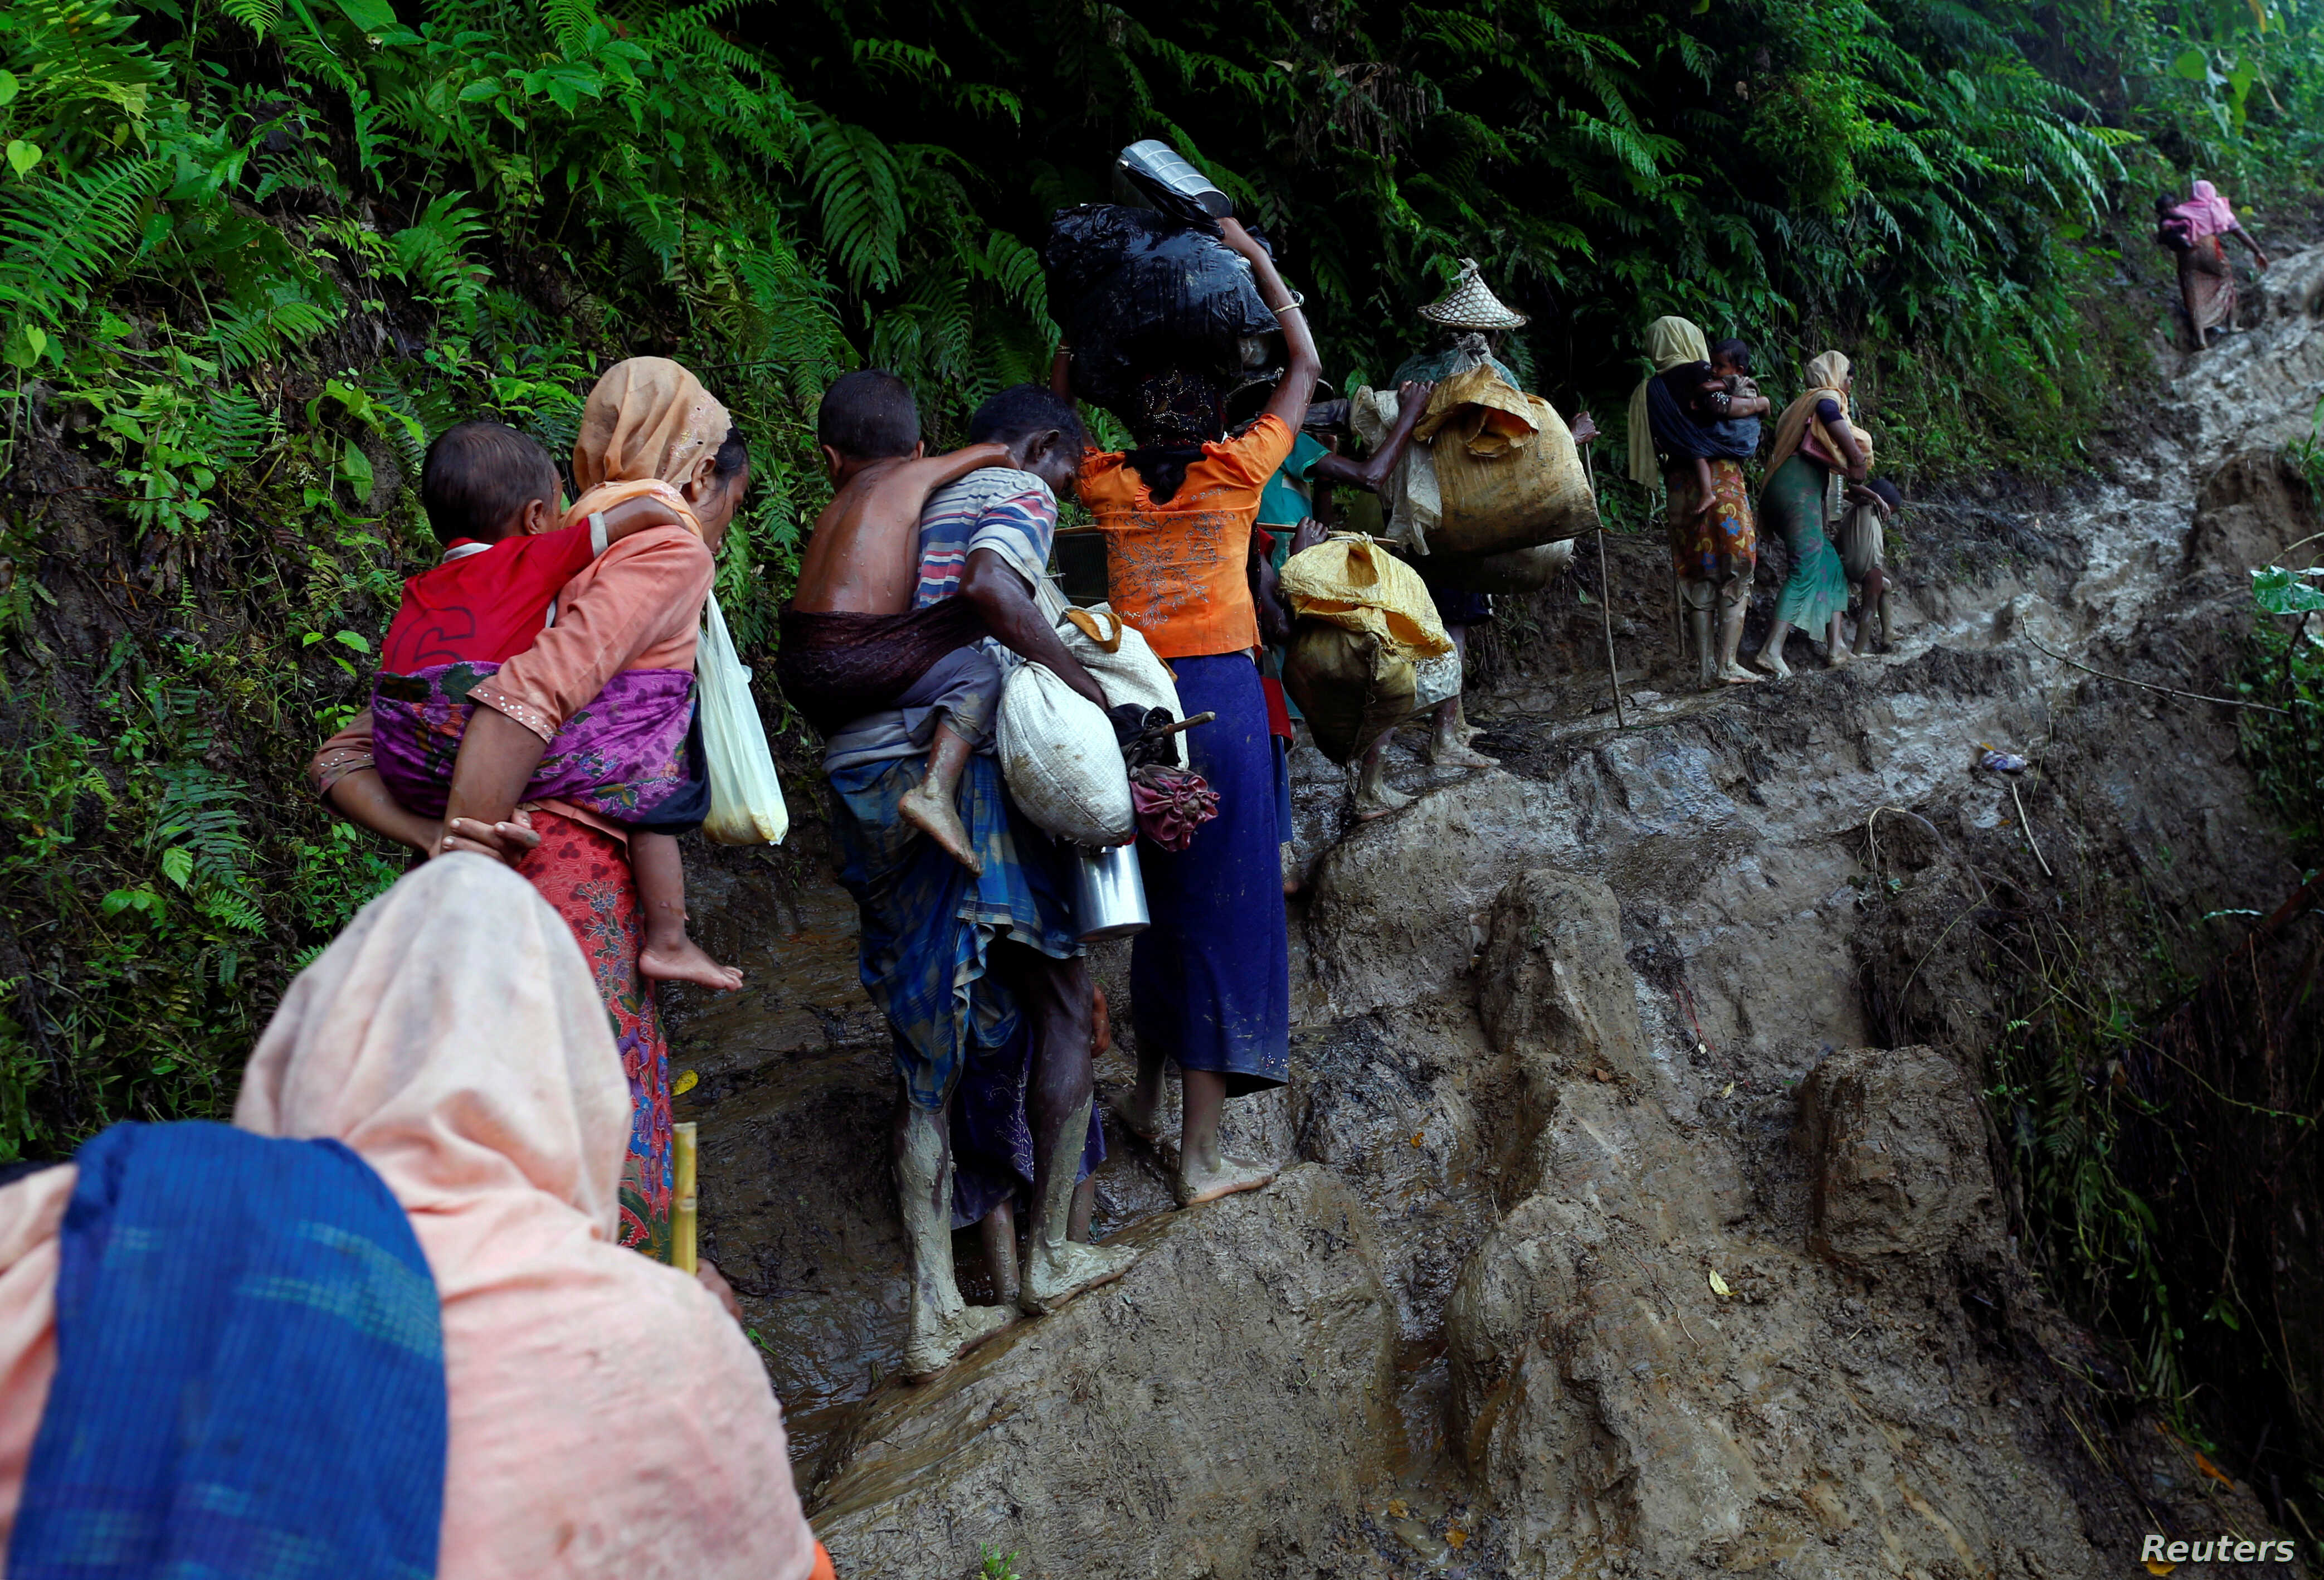 Rohingya refugees climb up a hill after crossing the Bangladesh-Myanmar border in Cox's Bazar, Bangladesh, Sept. 8, 2017.